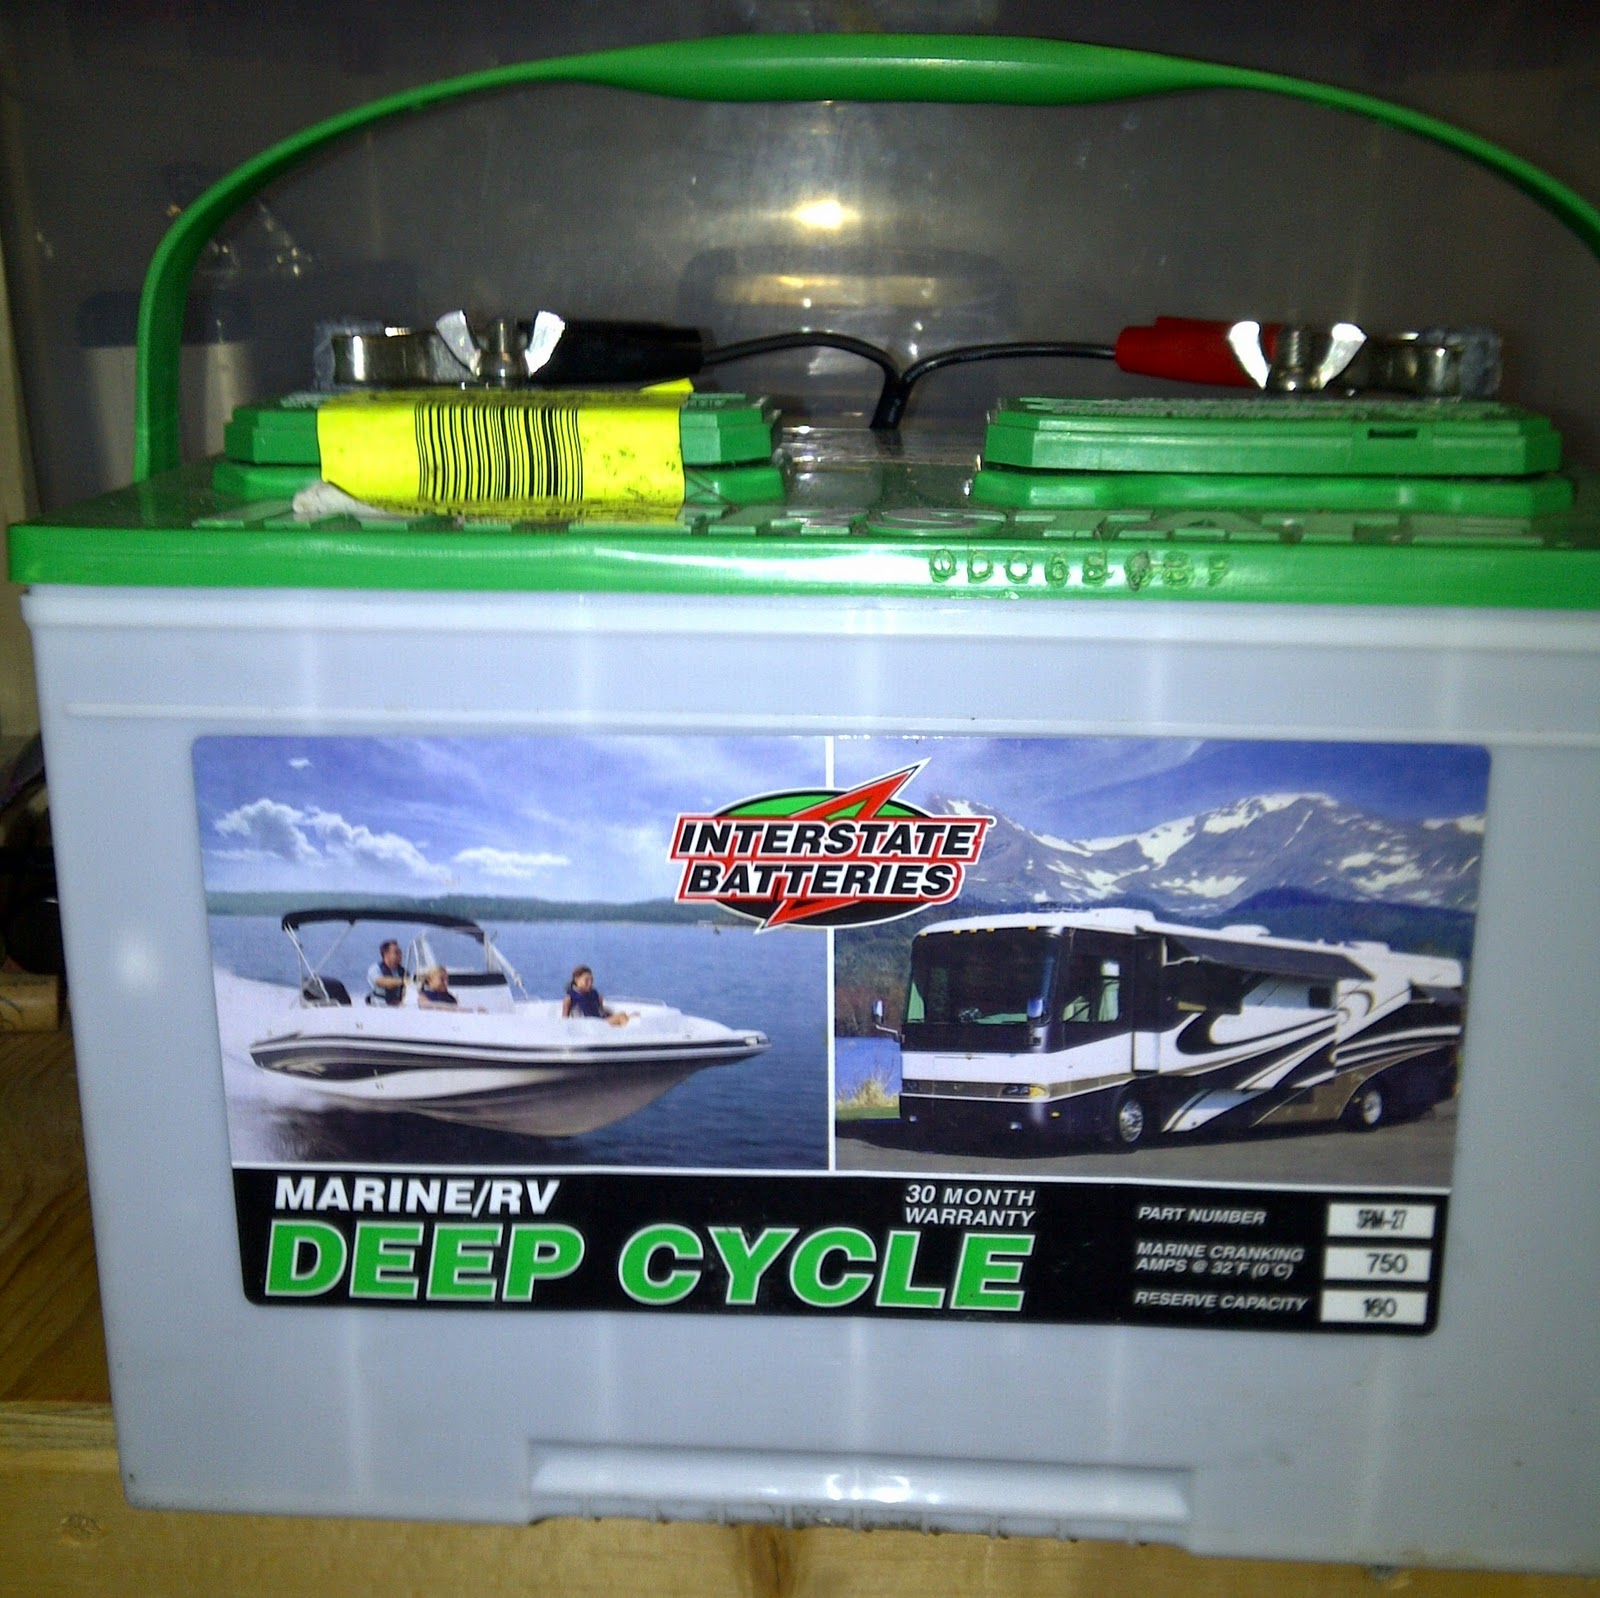 How to rv camping rv power batteries for Interstate deep cycle trolling motor battery